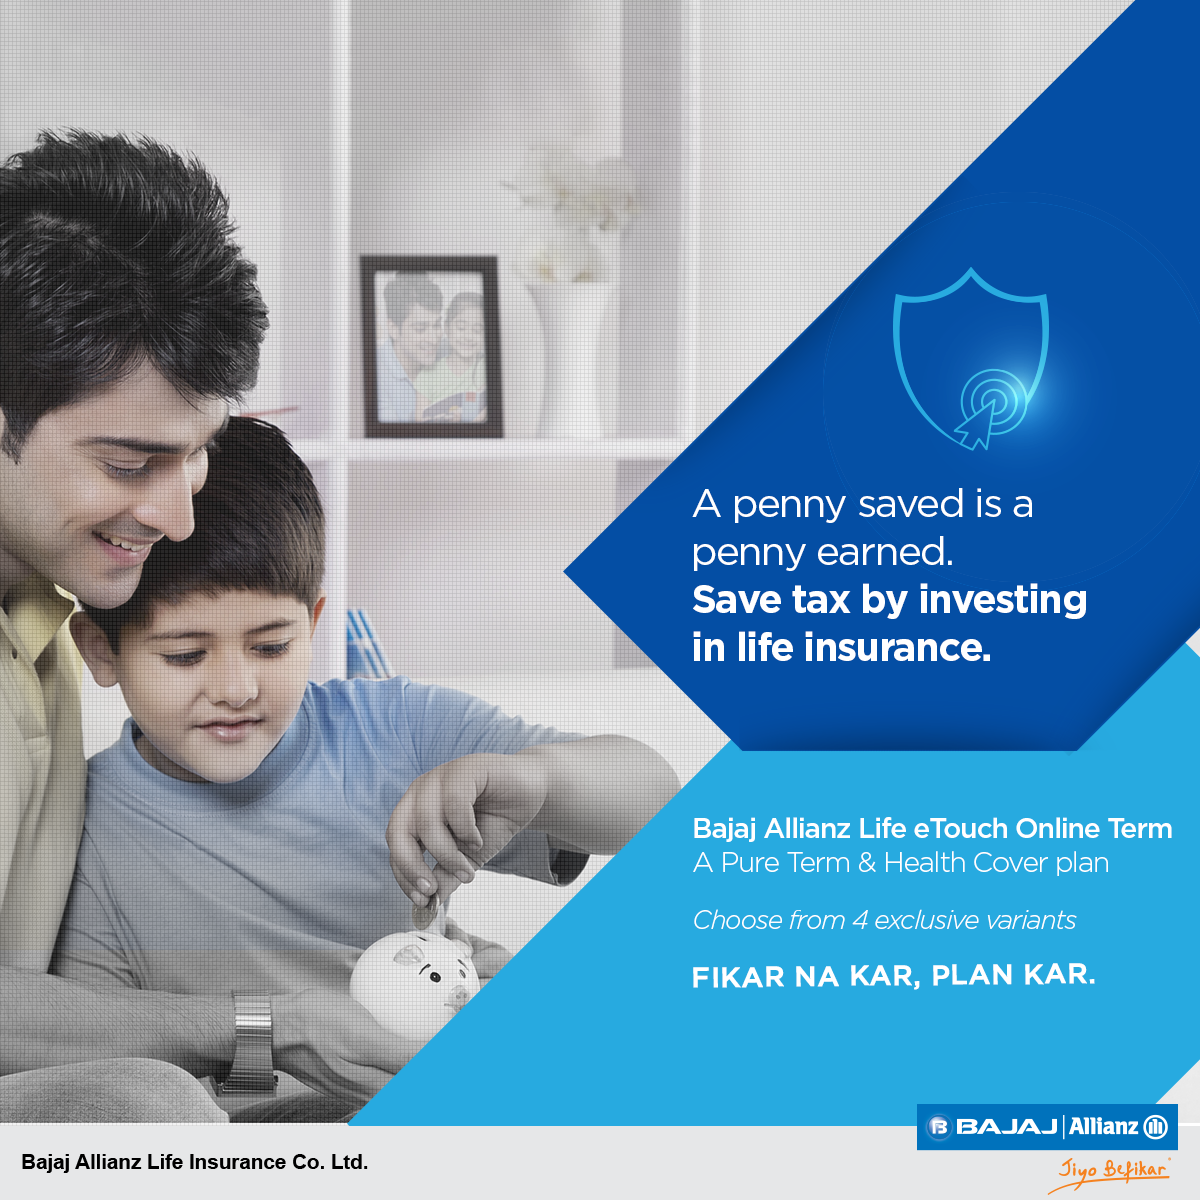 How To View Your Bajaj Allianz Life Insurance Policy Details